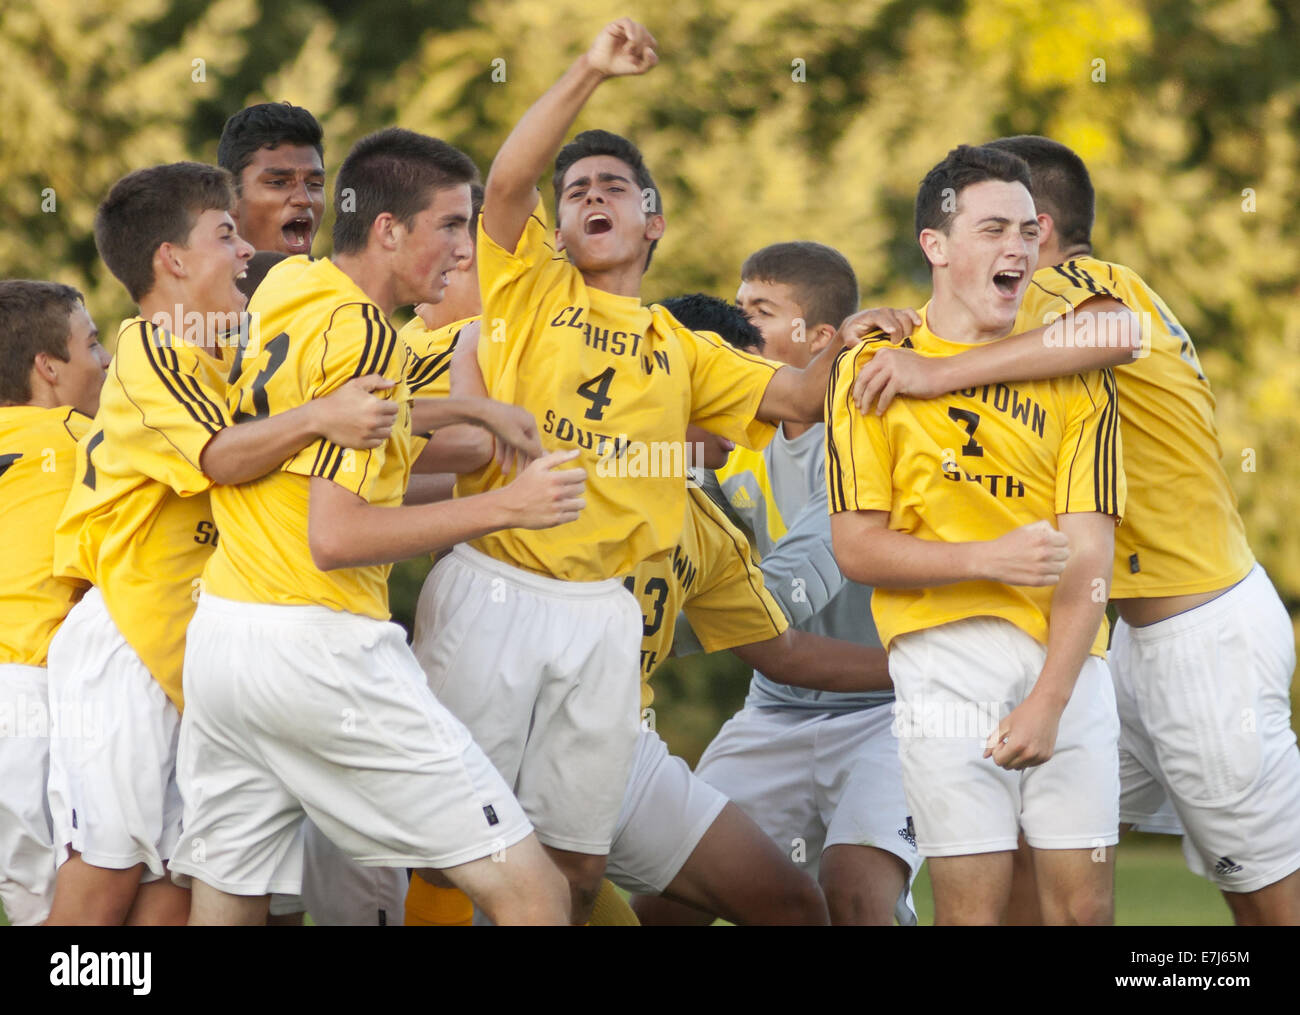 Thiells, New York, USA. 18th Sep, 2014. Clarkstown South players celebrate after ADAM GLOSKIN (7) scored with 6.7 - Stock Image